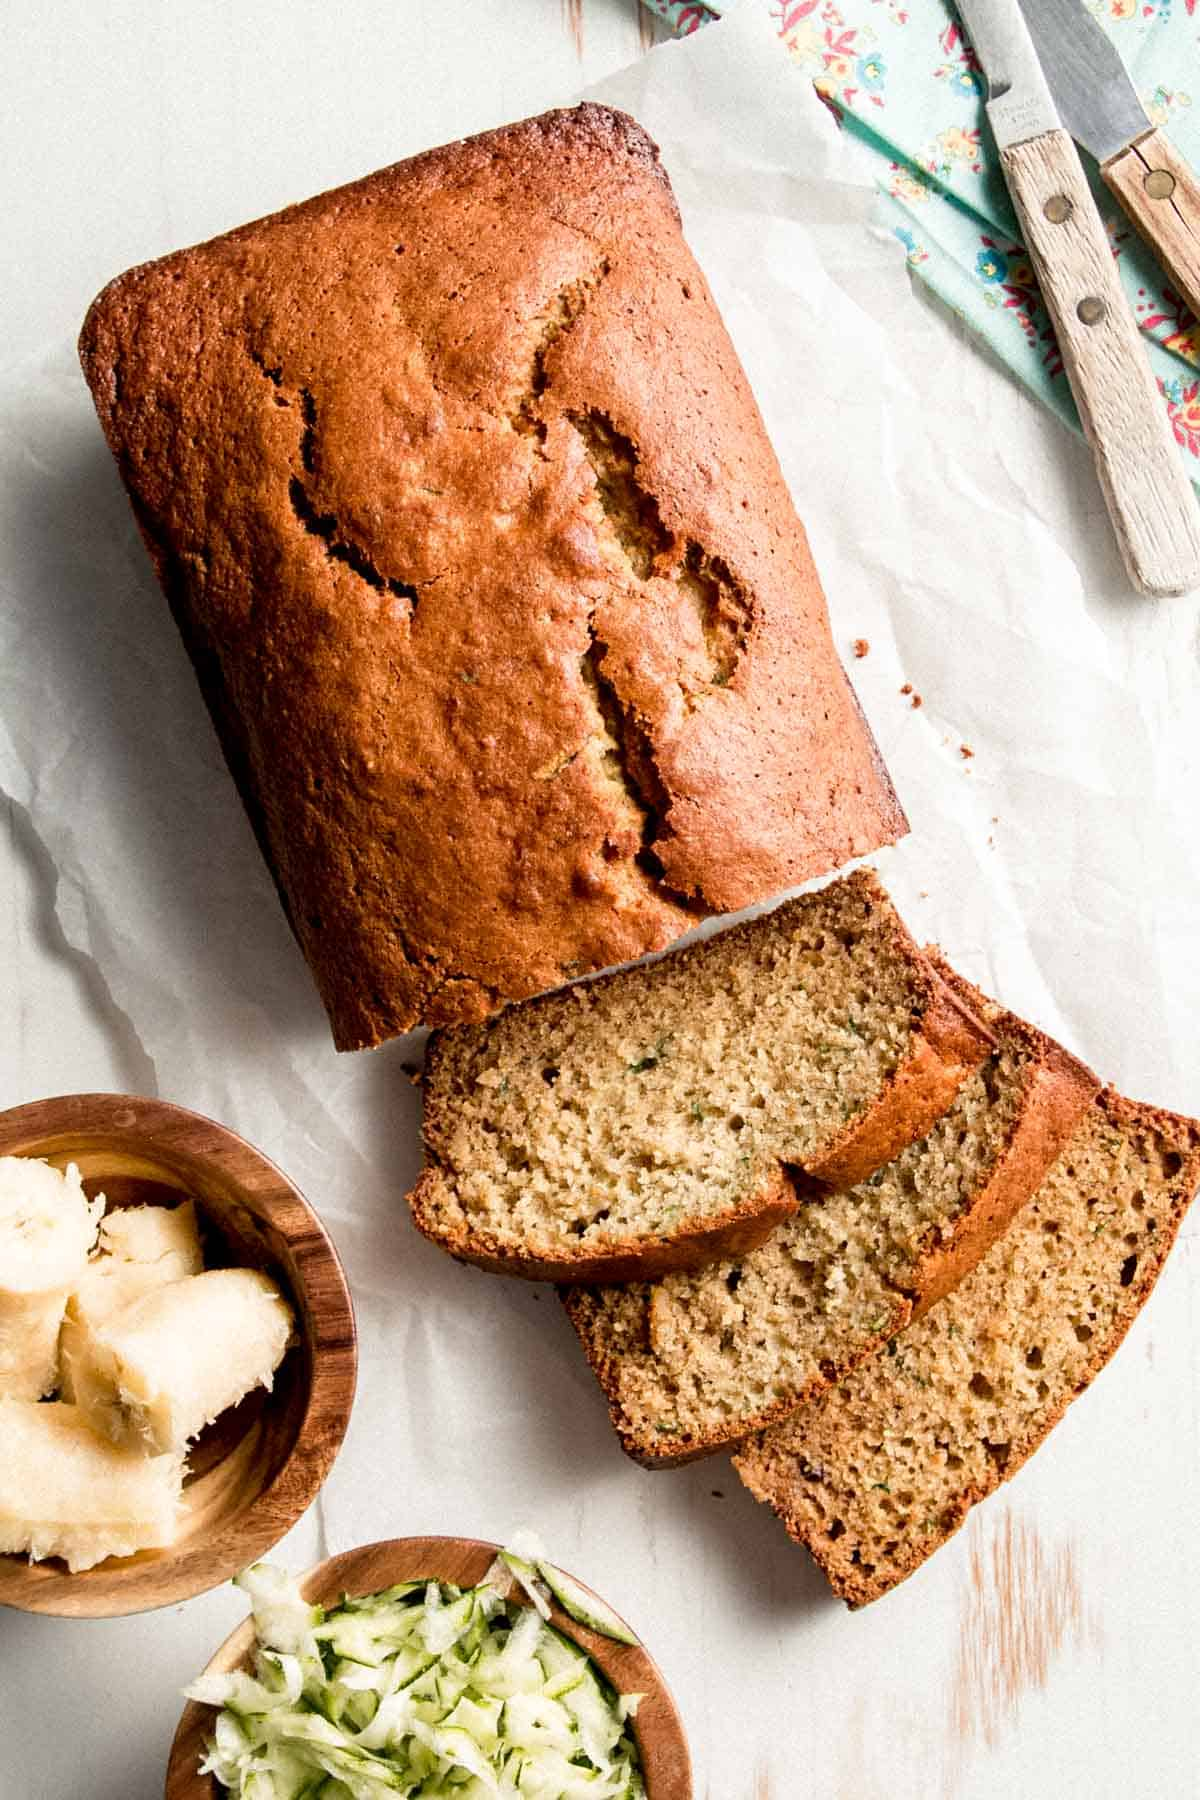 A loaf of Gluten-free Zucchini Banana Bread with a few slices laid on their sides next to small bowls of ripe banana and grated zucchini.